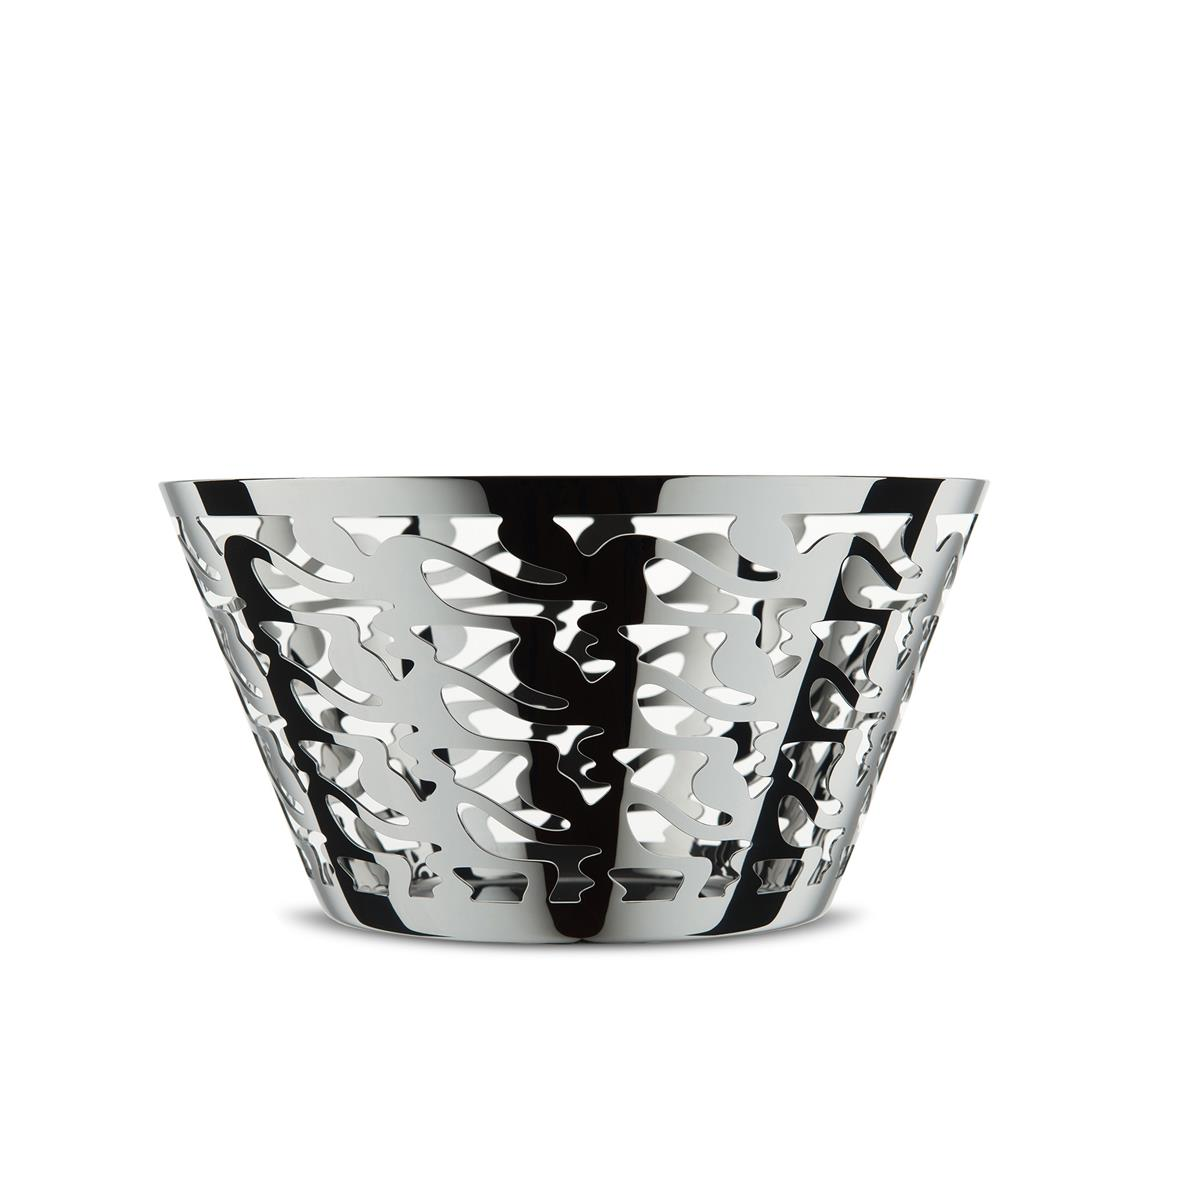 Alessi-Ethno Perforated fruit bowl in 18/10 stainless steel